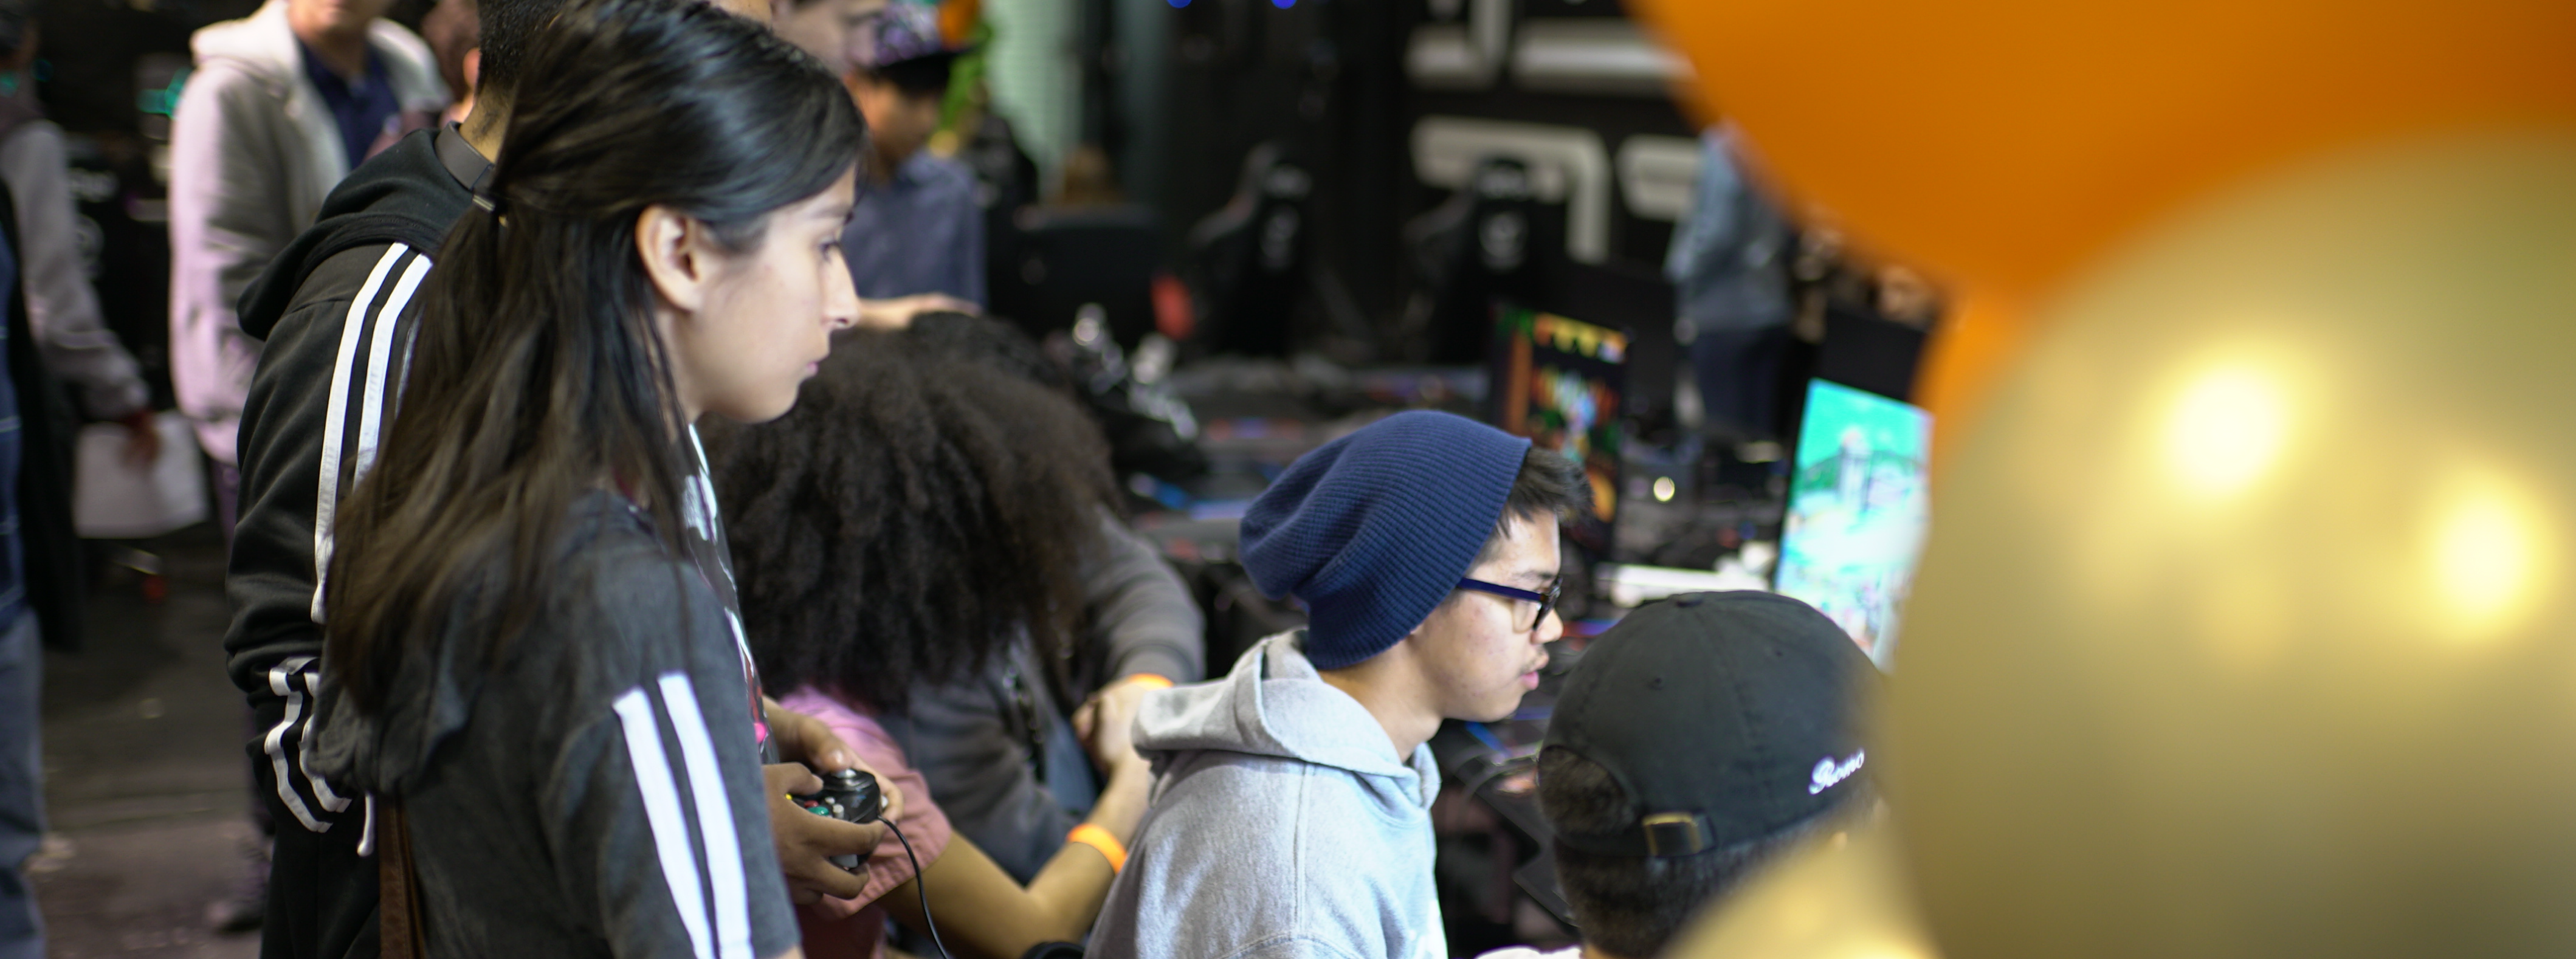 High school students playing in a Smash Ultimate tournament hosted by Laguna Hills High School in Laguna Hills, California at the 2019 North America High School Scholastic League of Legends Championship.